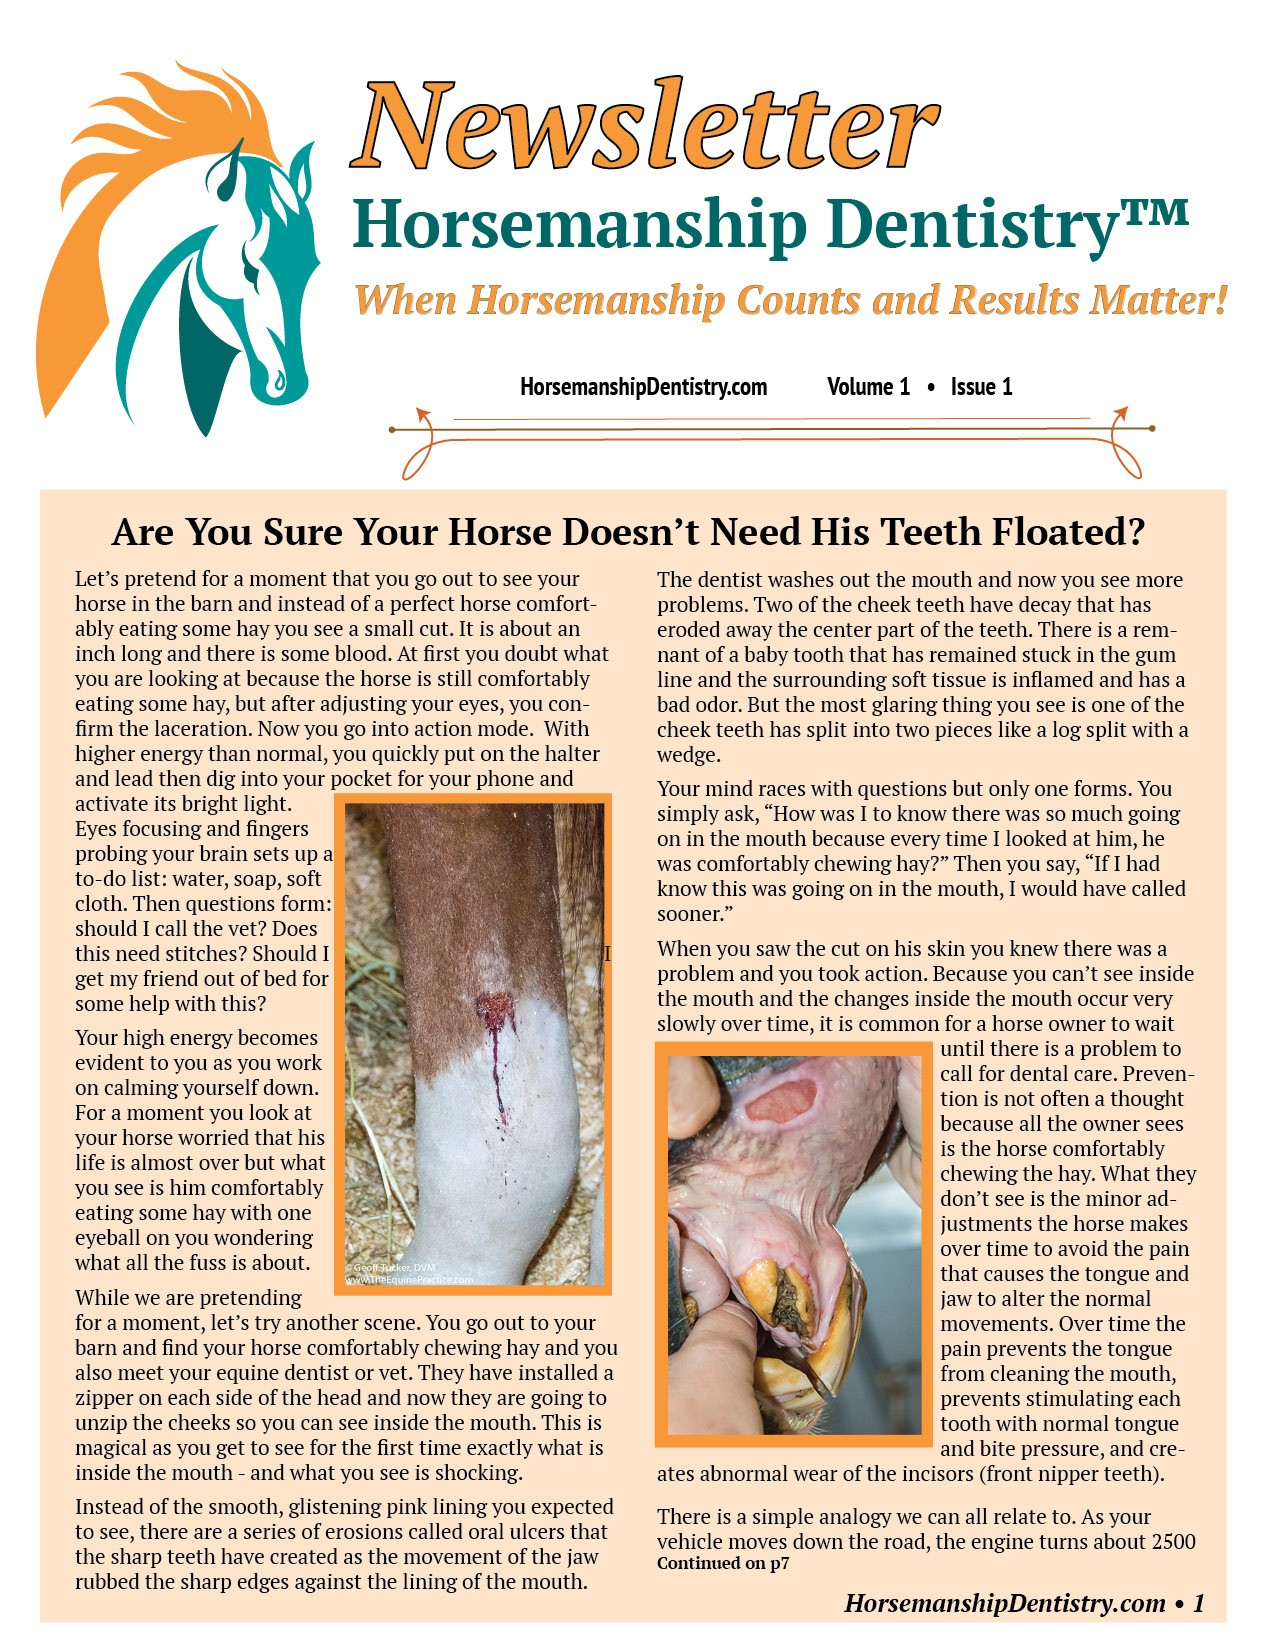 Horsemanship Dentistry Newsletter Volume 1 page 1